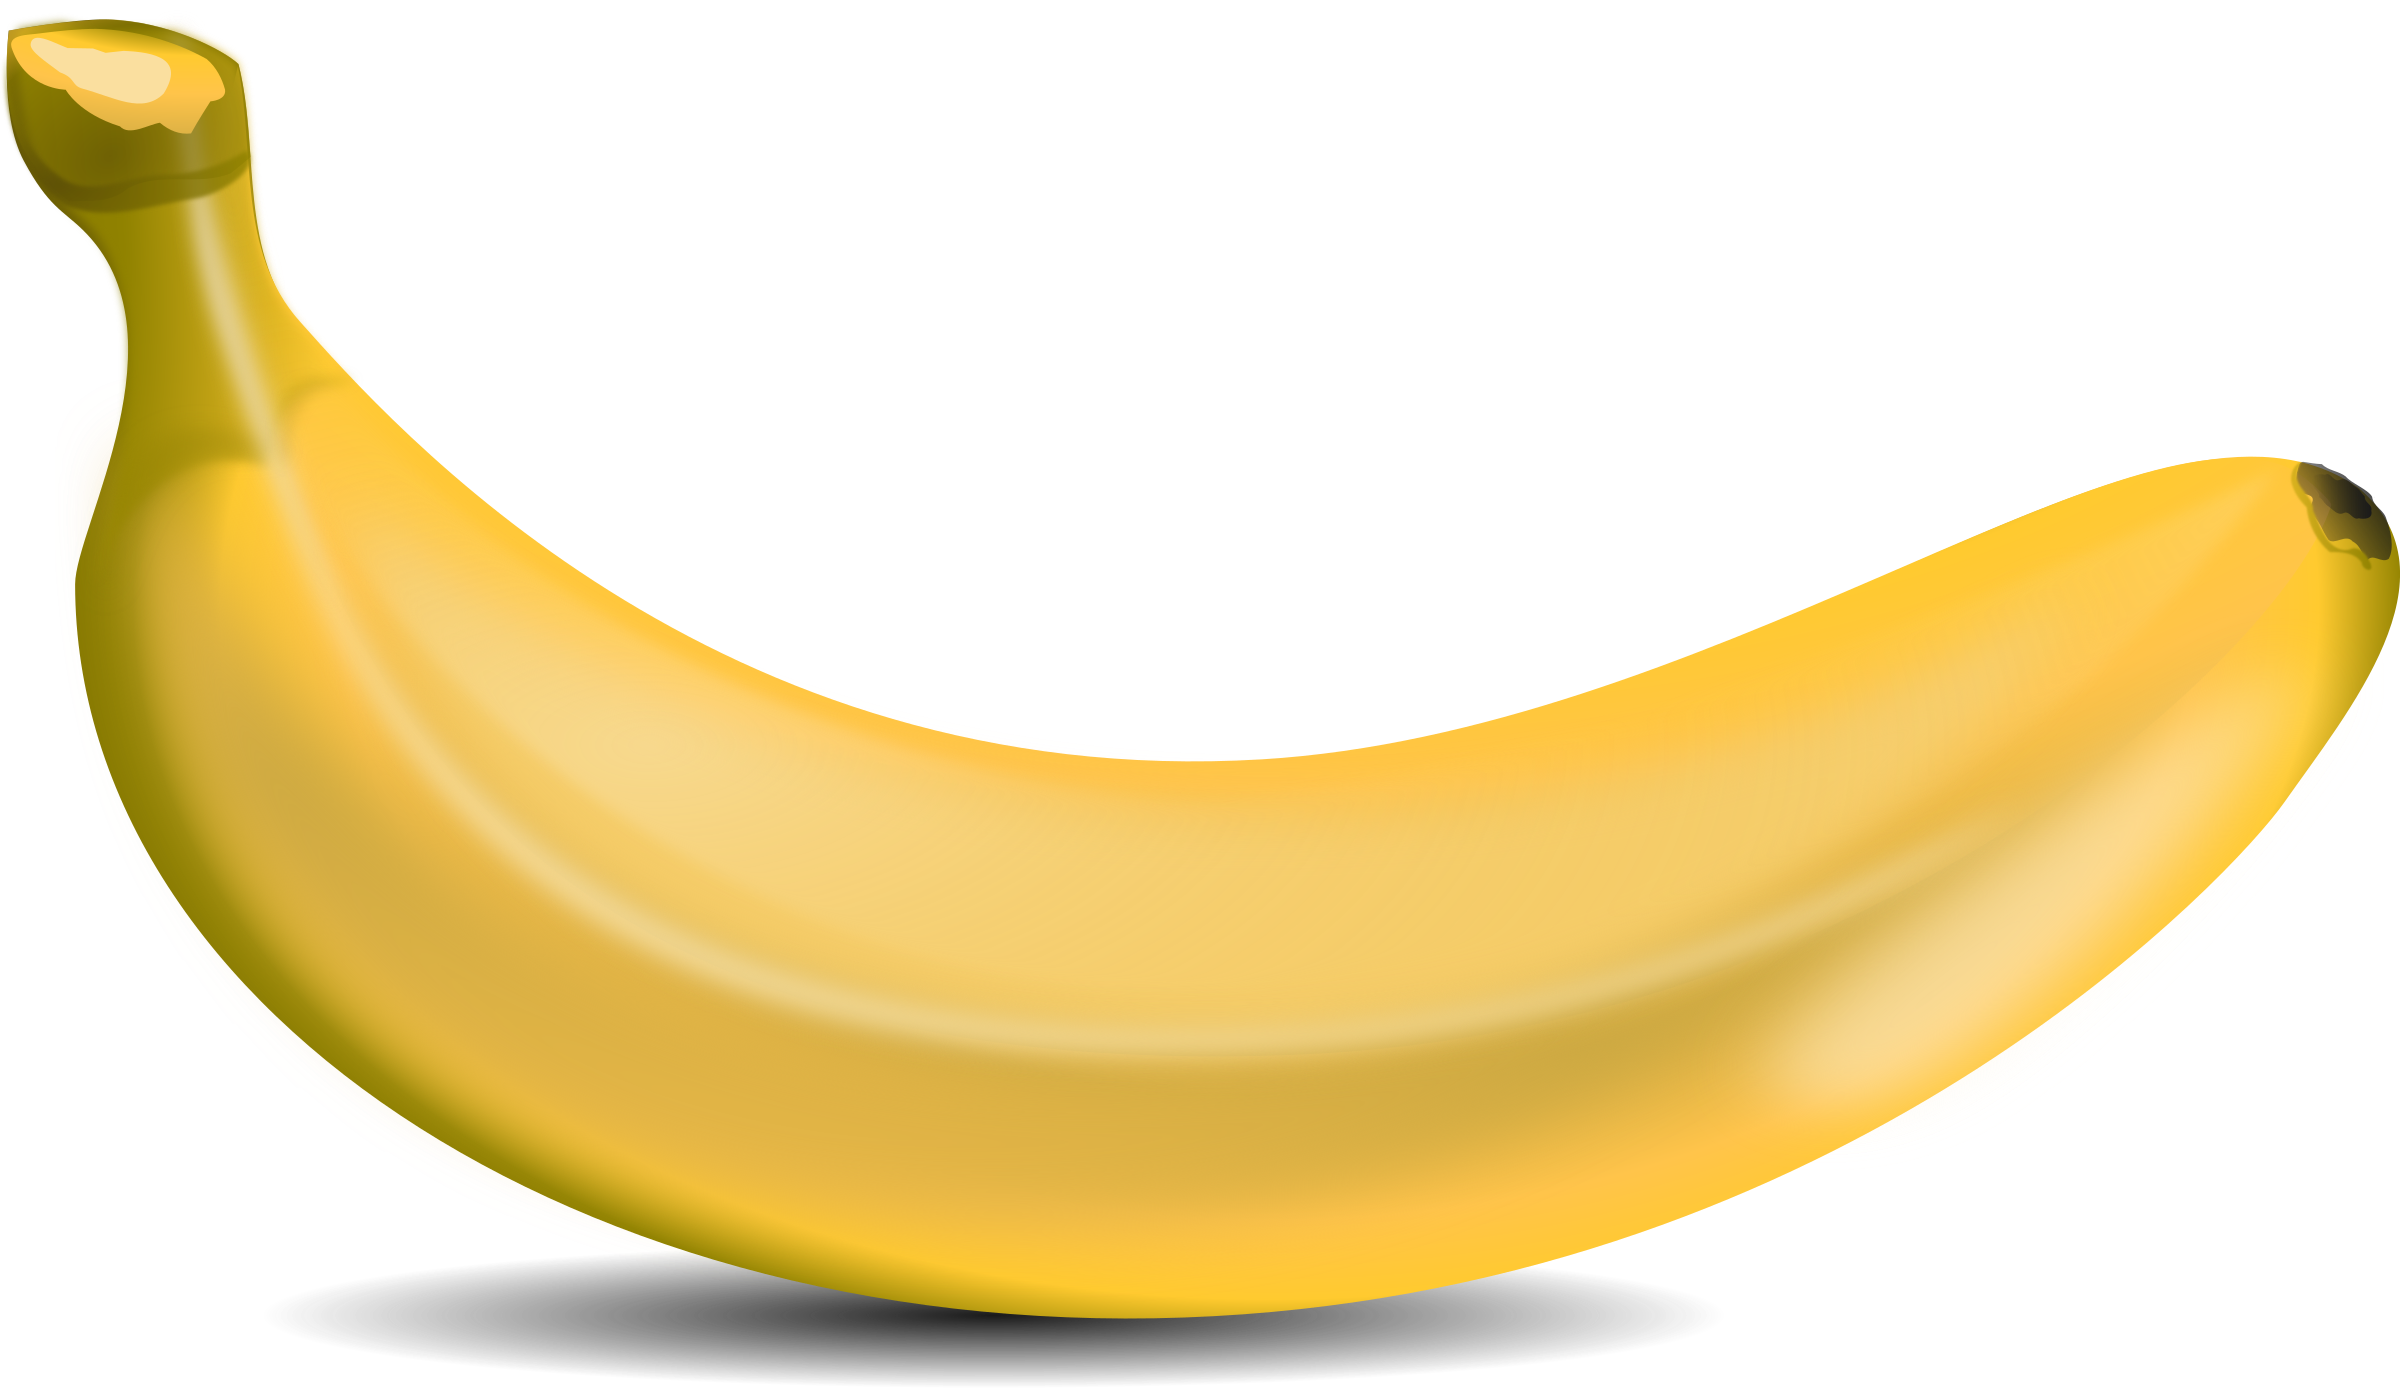 Banana and apple together clipart transparent stock 28+ Collection of Banana Clipart Png | High quality, free cliparts ... transparent stock